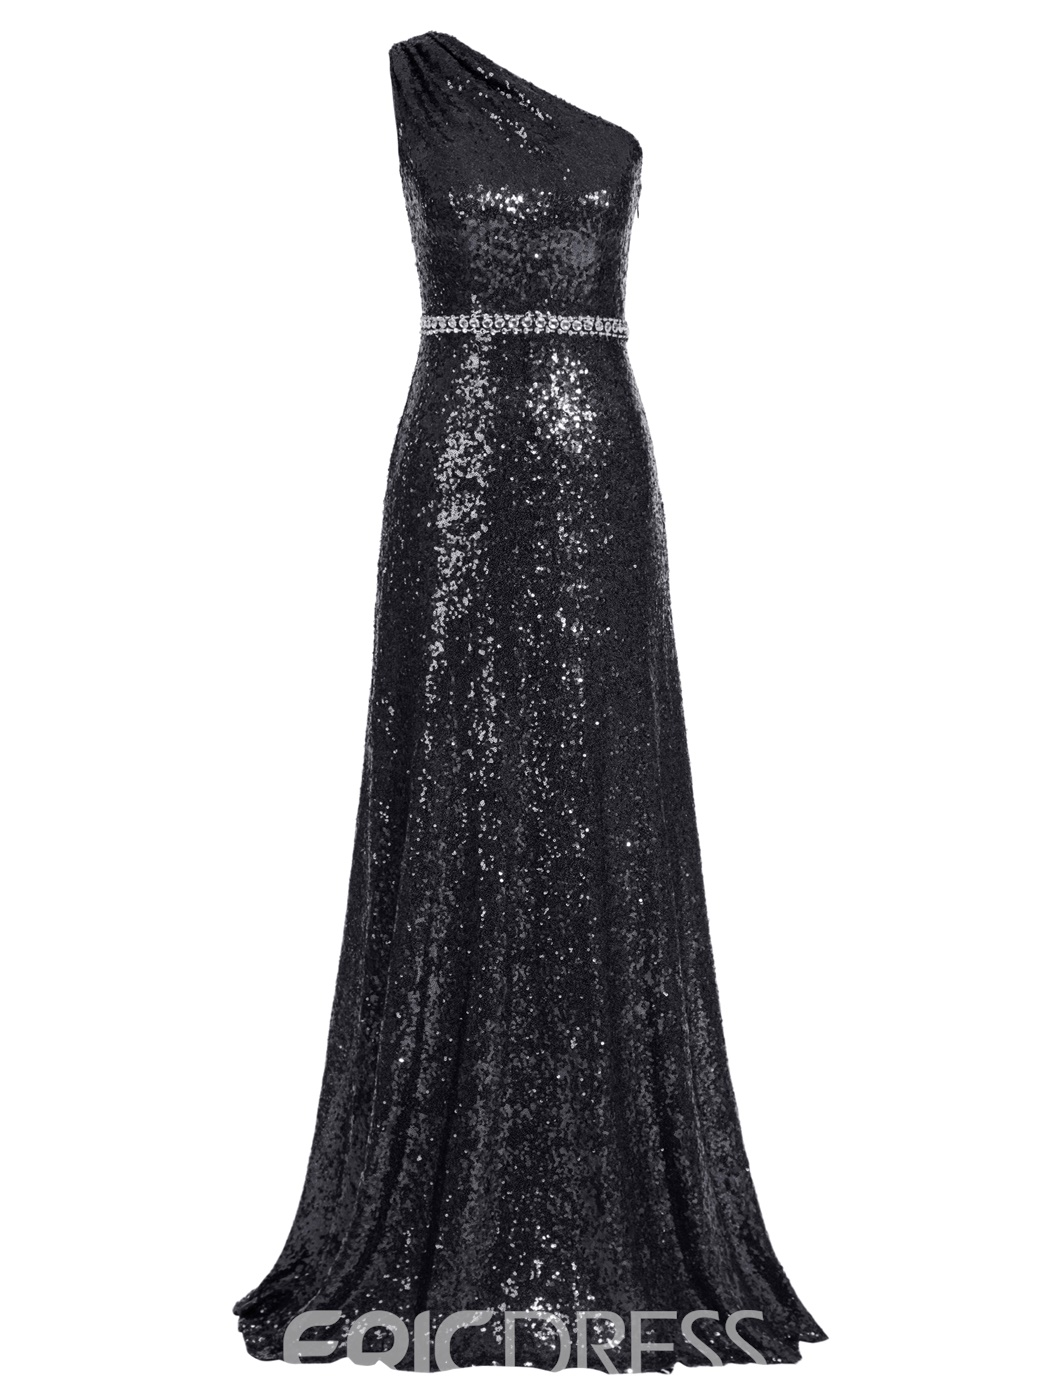 Ericdress One Shoulder Sequins A Line Long Evening Dress